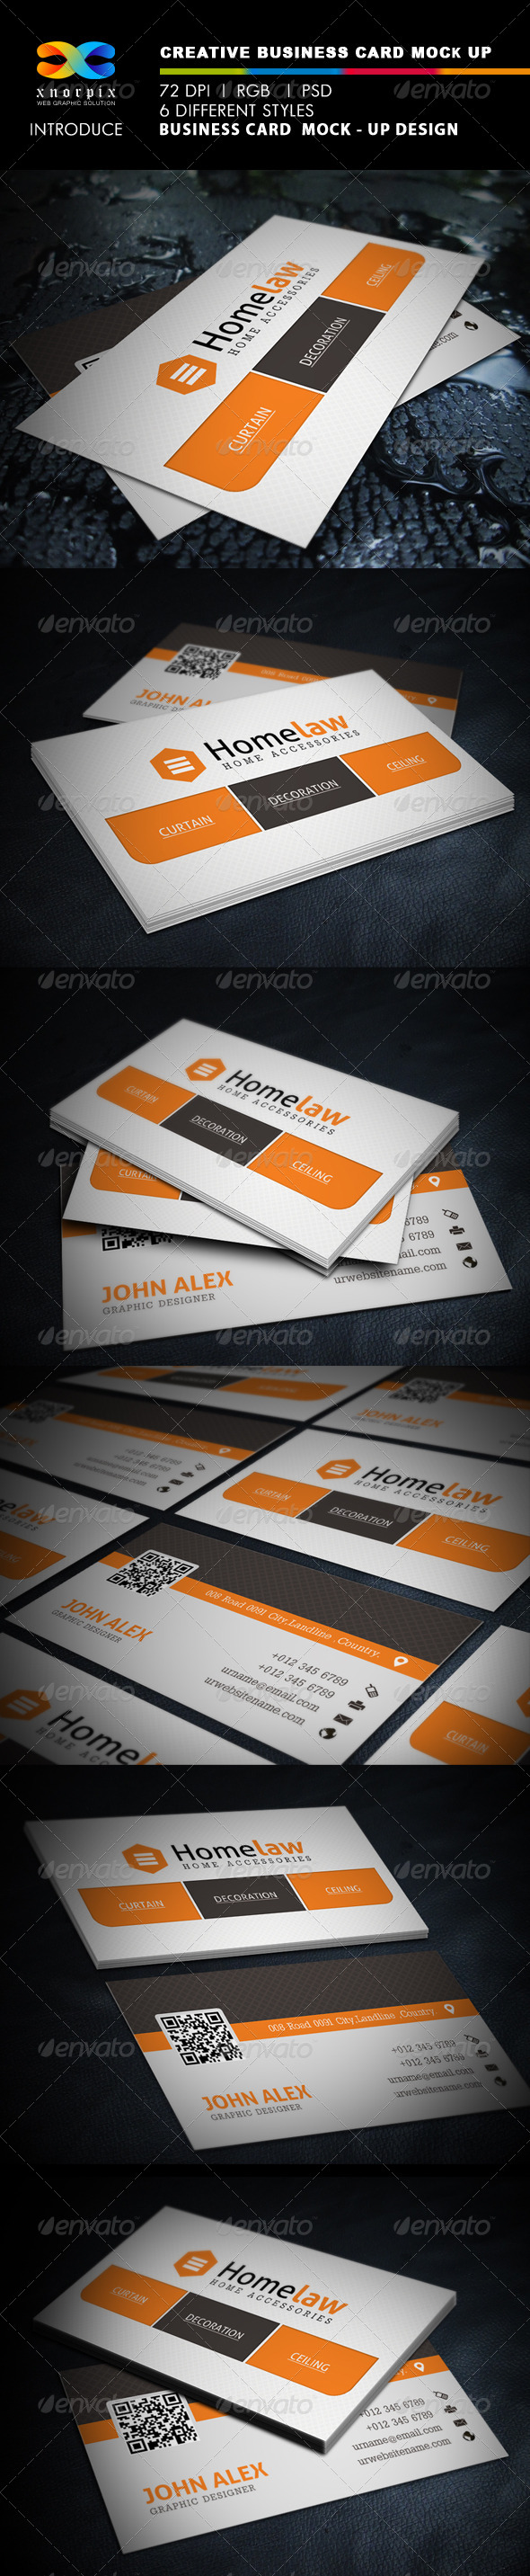 Realistic Business Card Mock-up - Business Cards Print